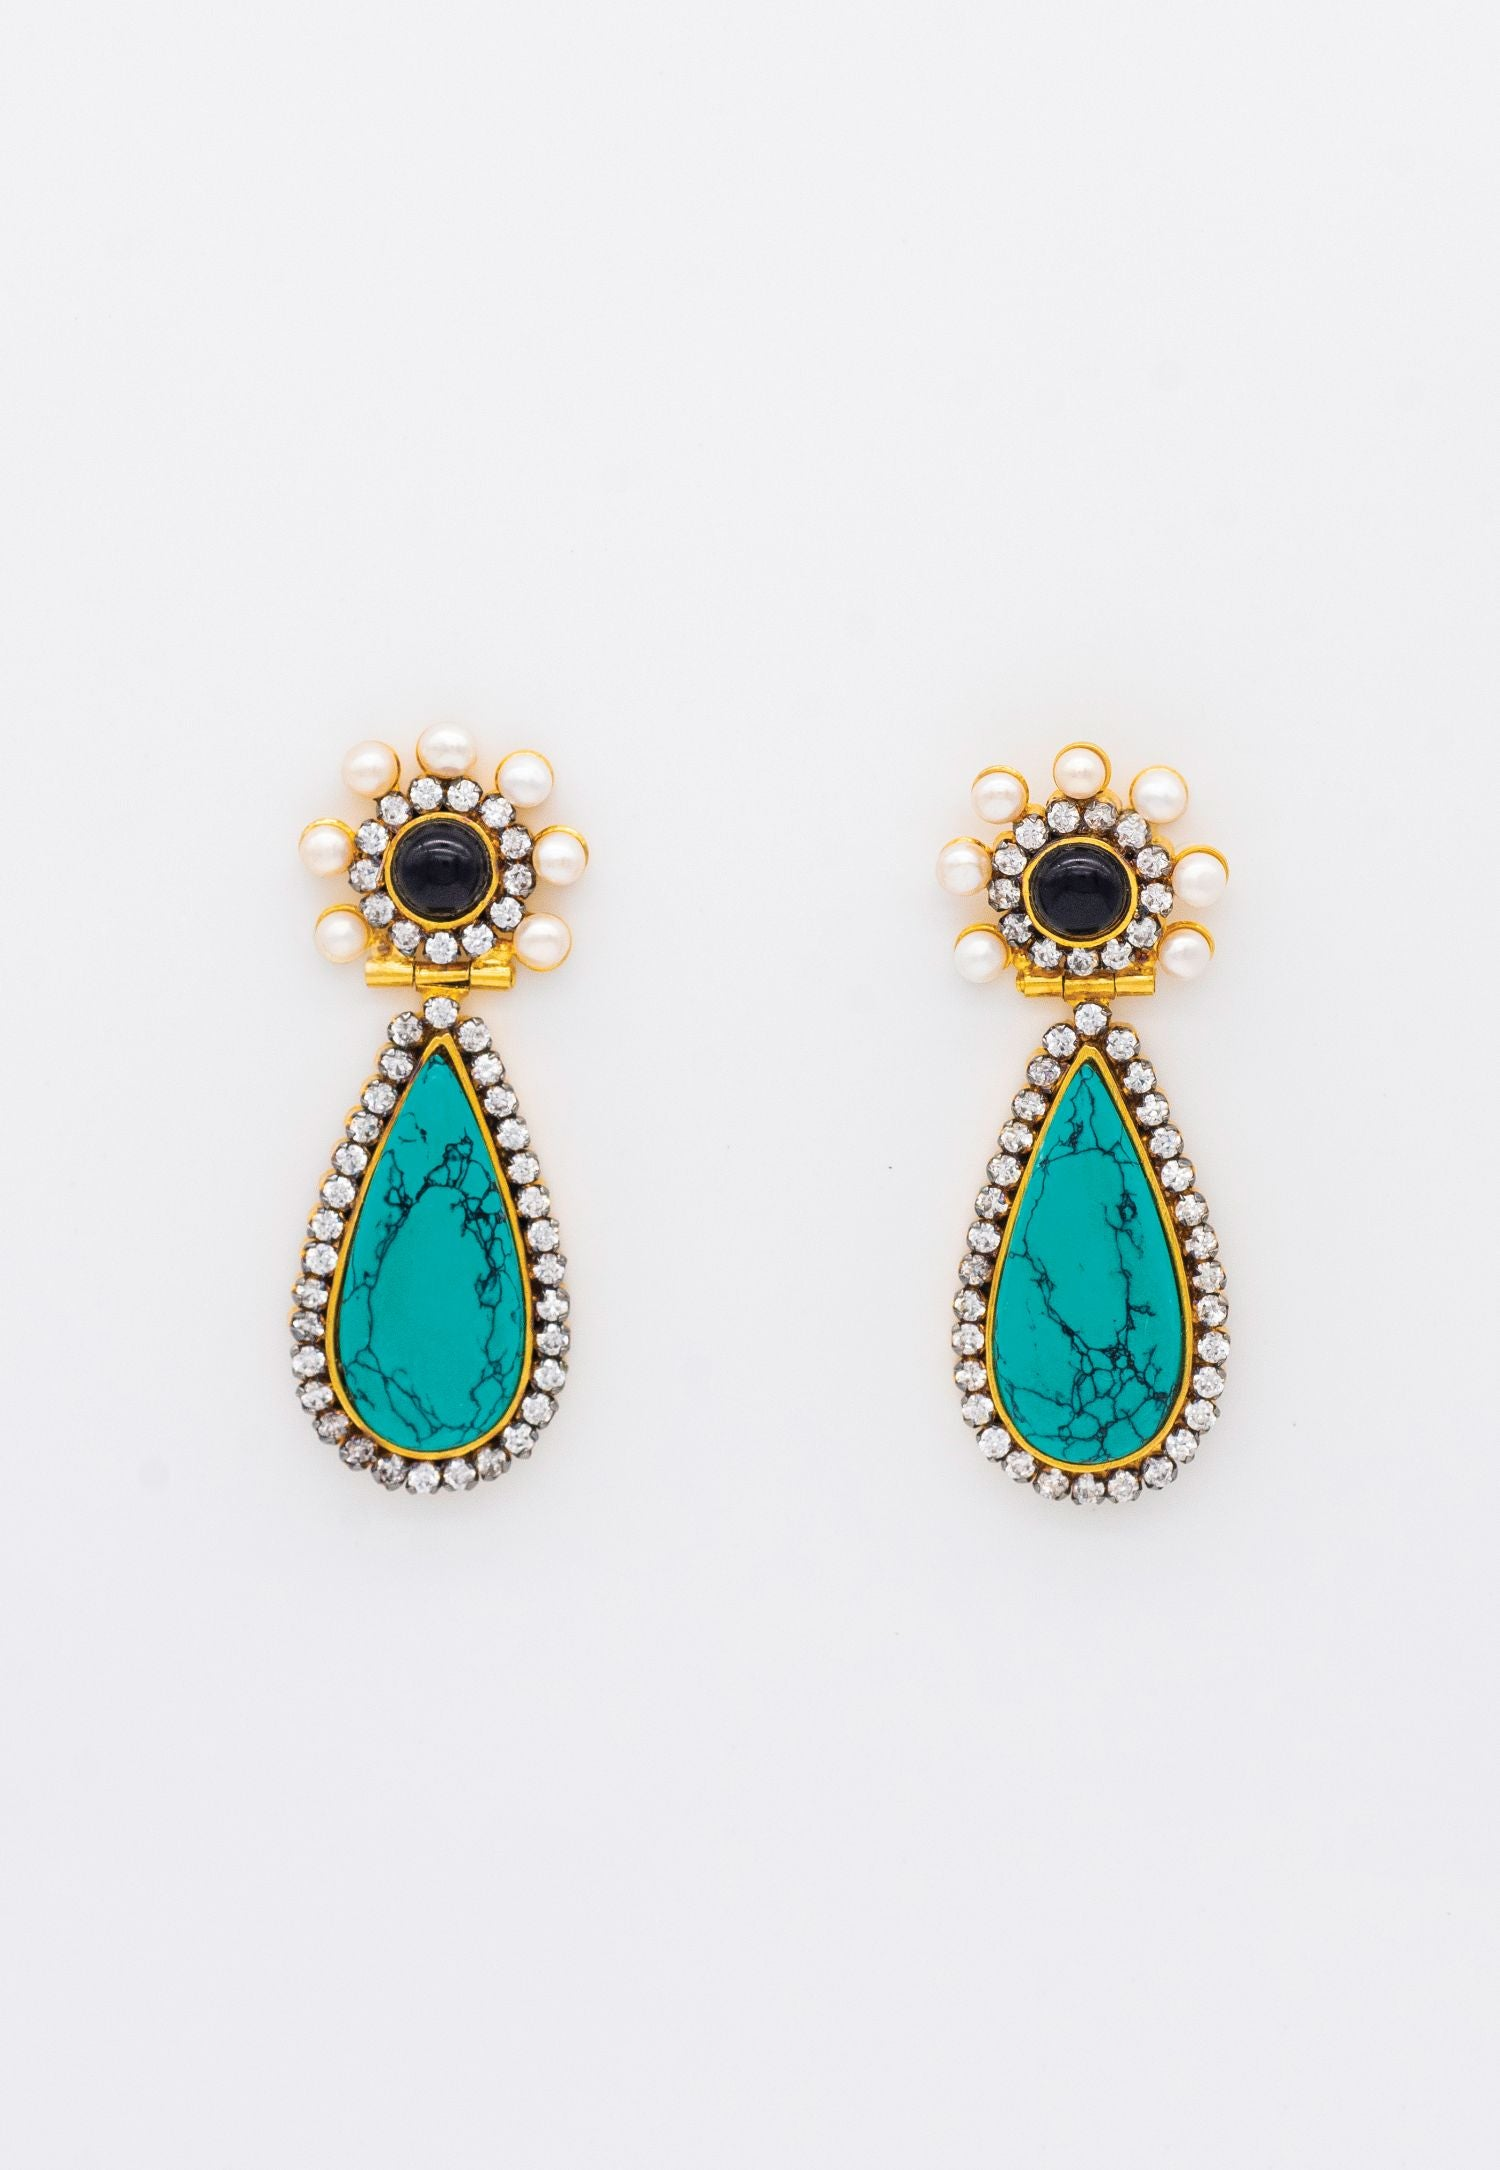 GOLD AND TURQUOISE  DROP EARRINGS WITH PEARLS AND CZ STONES